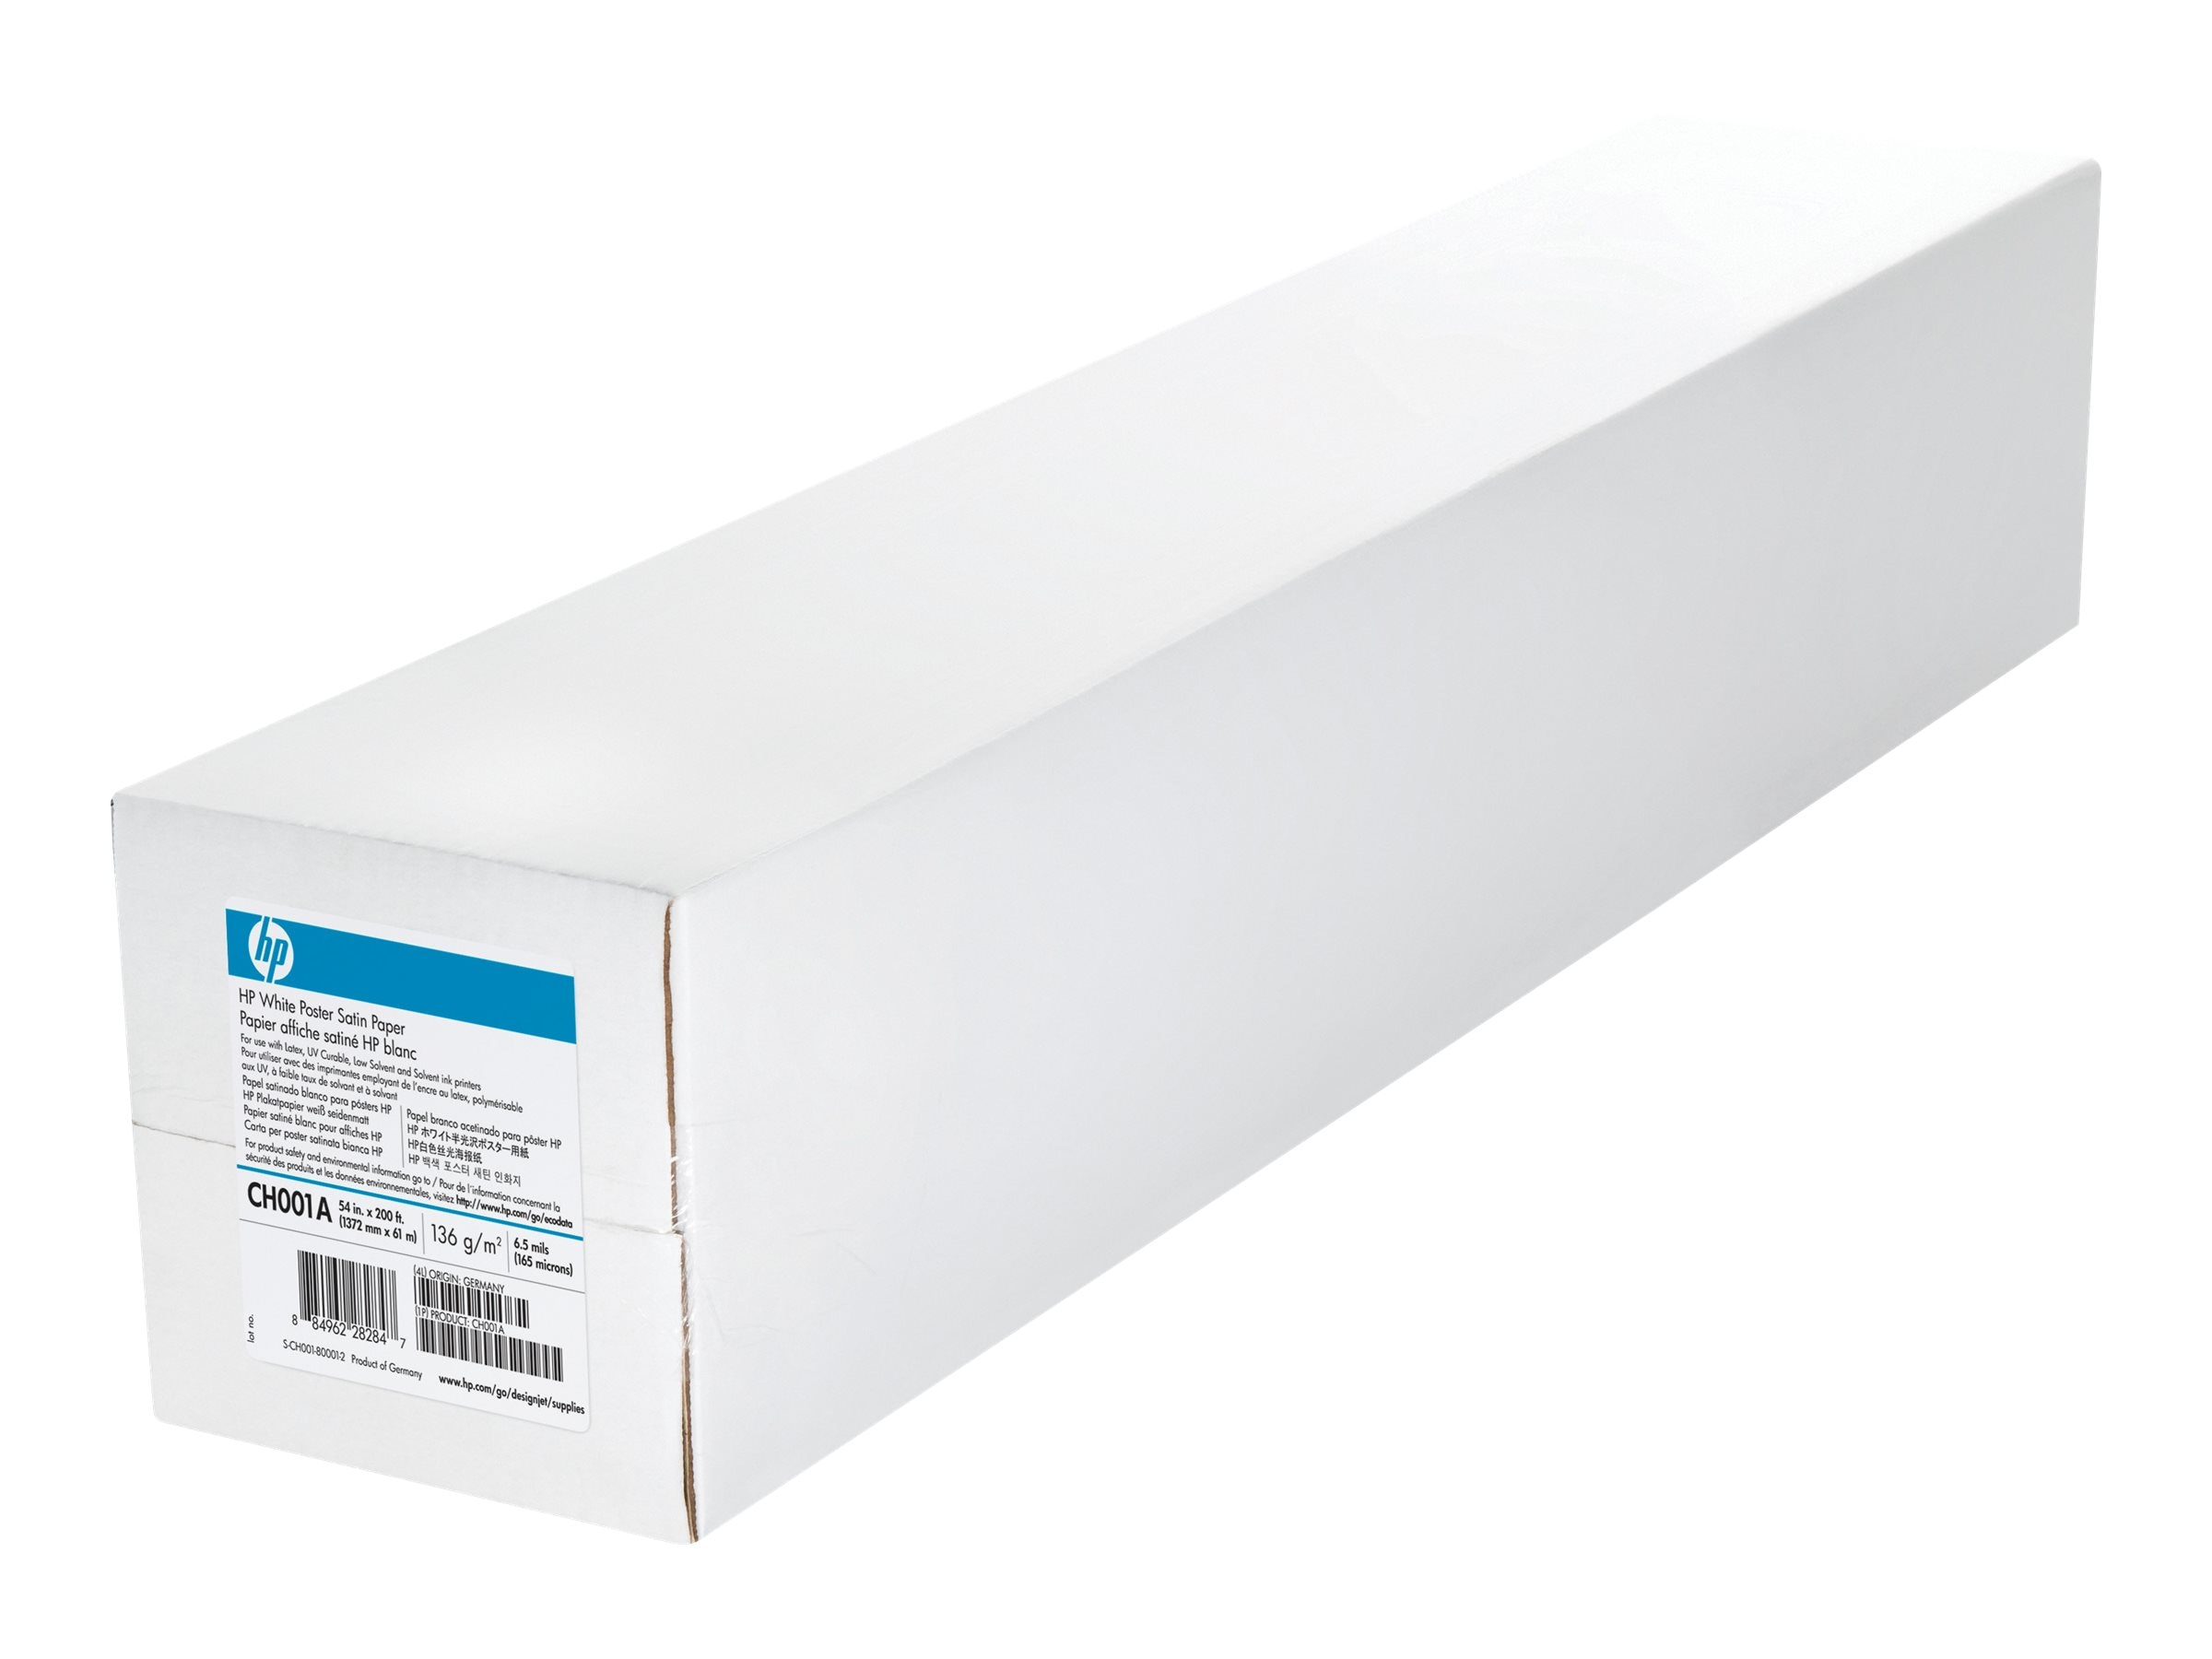 HP 54 x 200' White Satin Poster Paper, CH001A